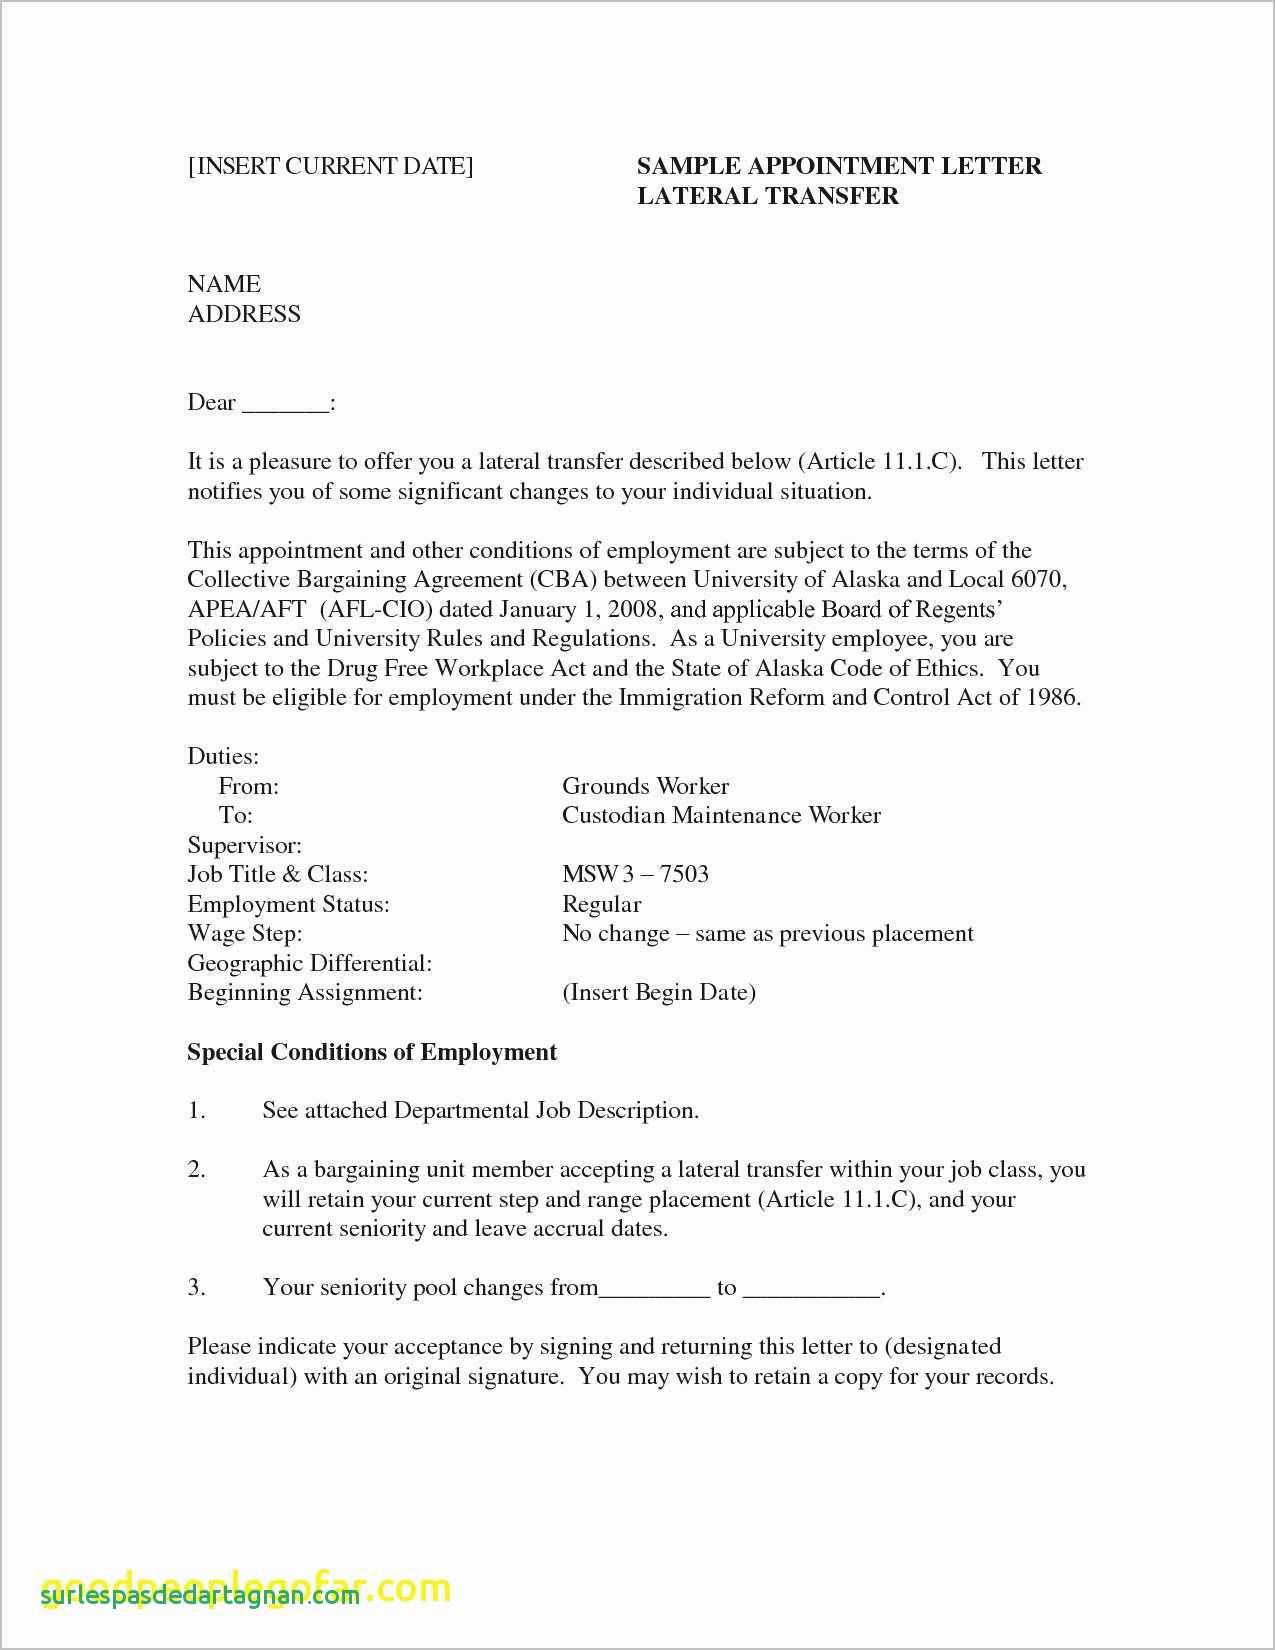 Offer Letter Email Template - Awesome Customer Service Email Templates